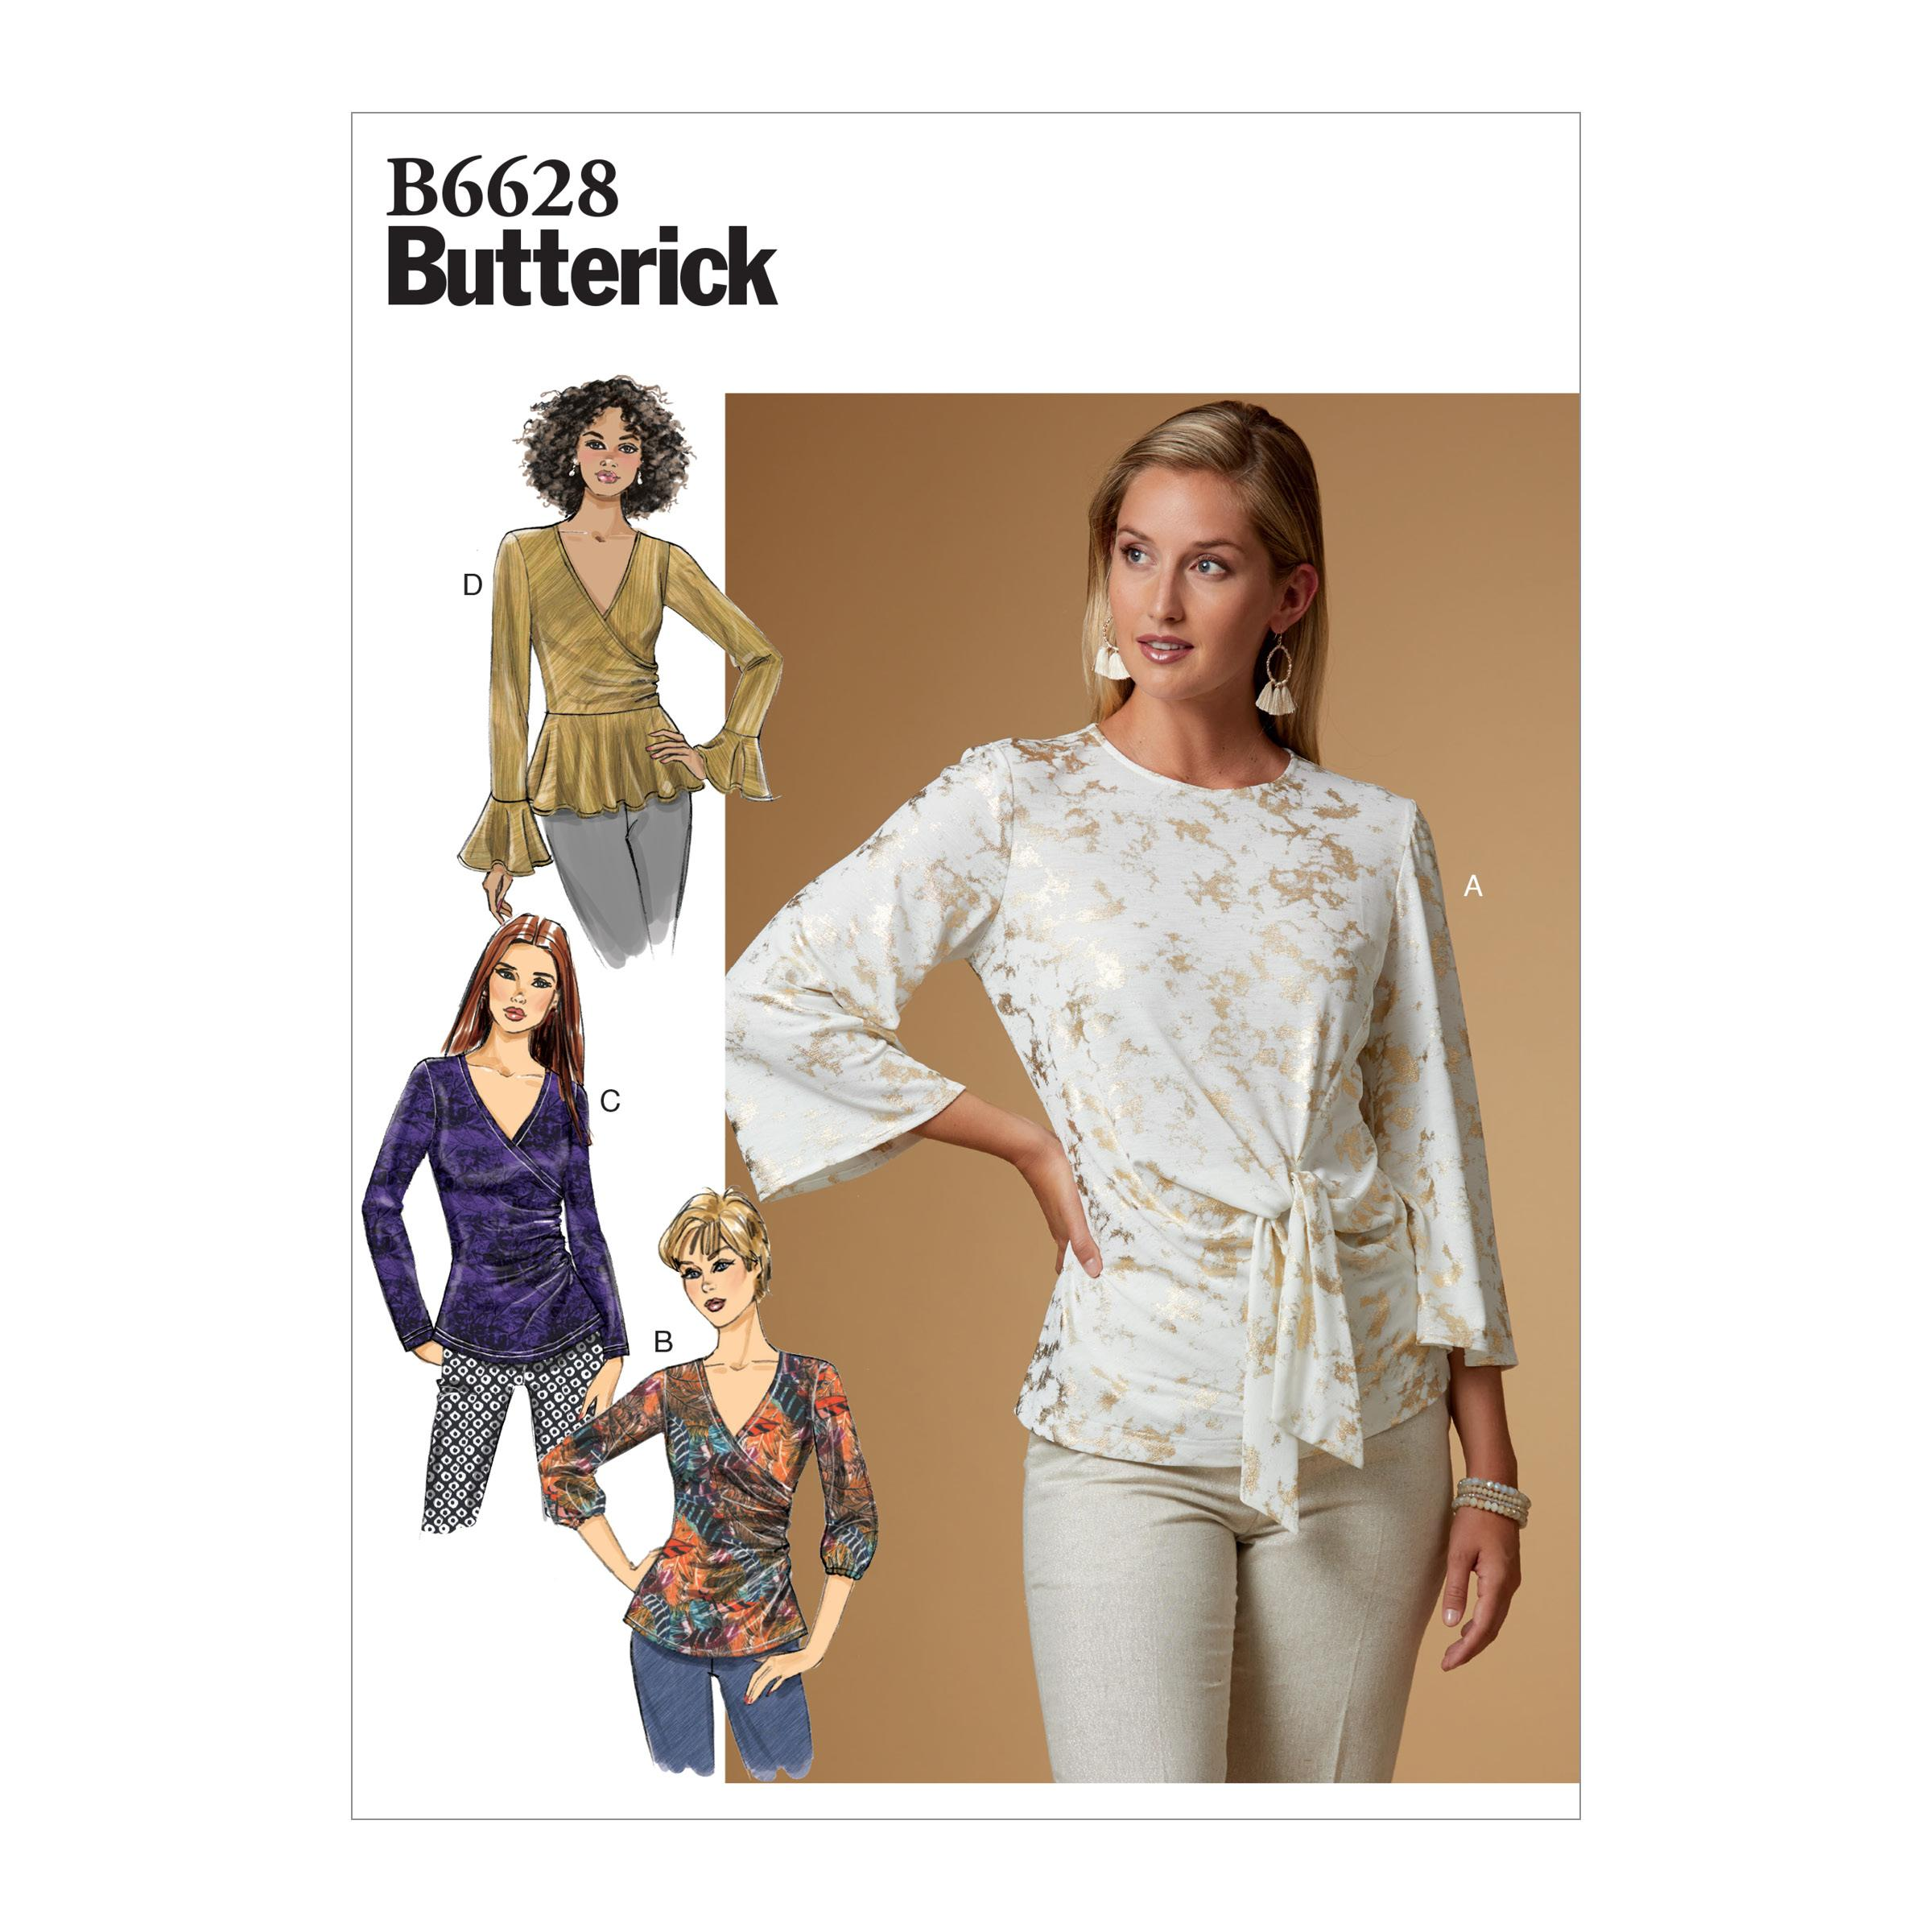 Butterick B6628 Misses' Top